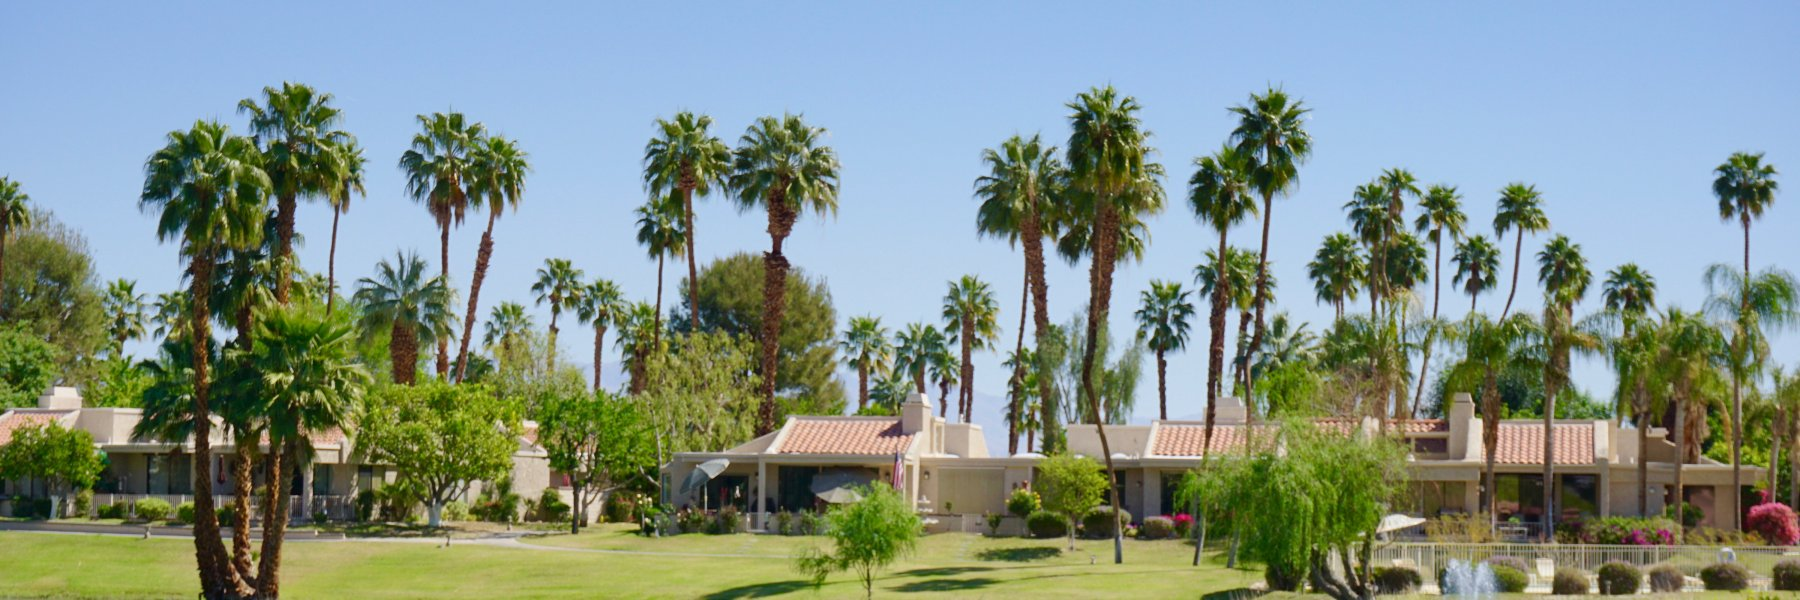 Cathedral Canyon Country Club is a community of homes in Cathedral City California